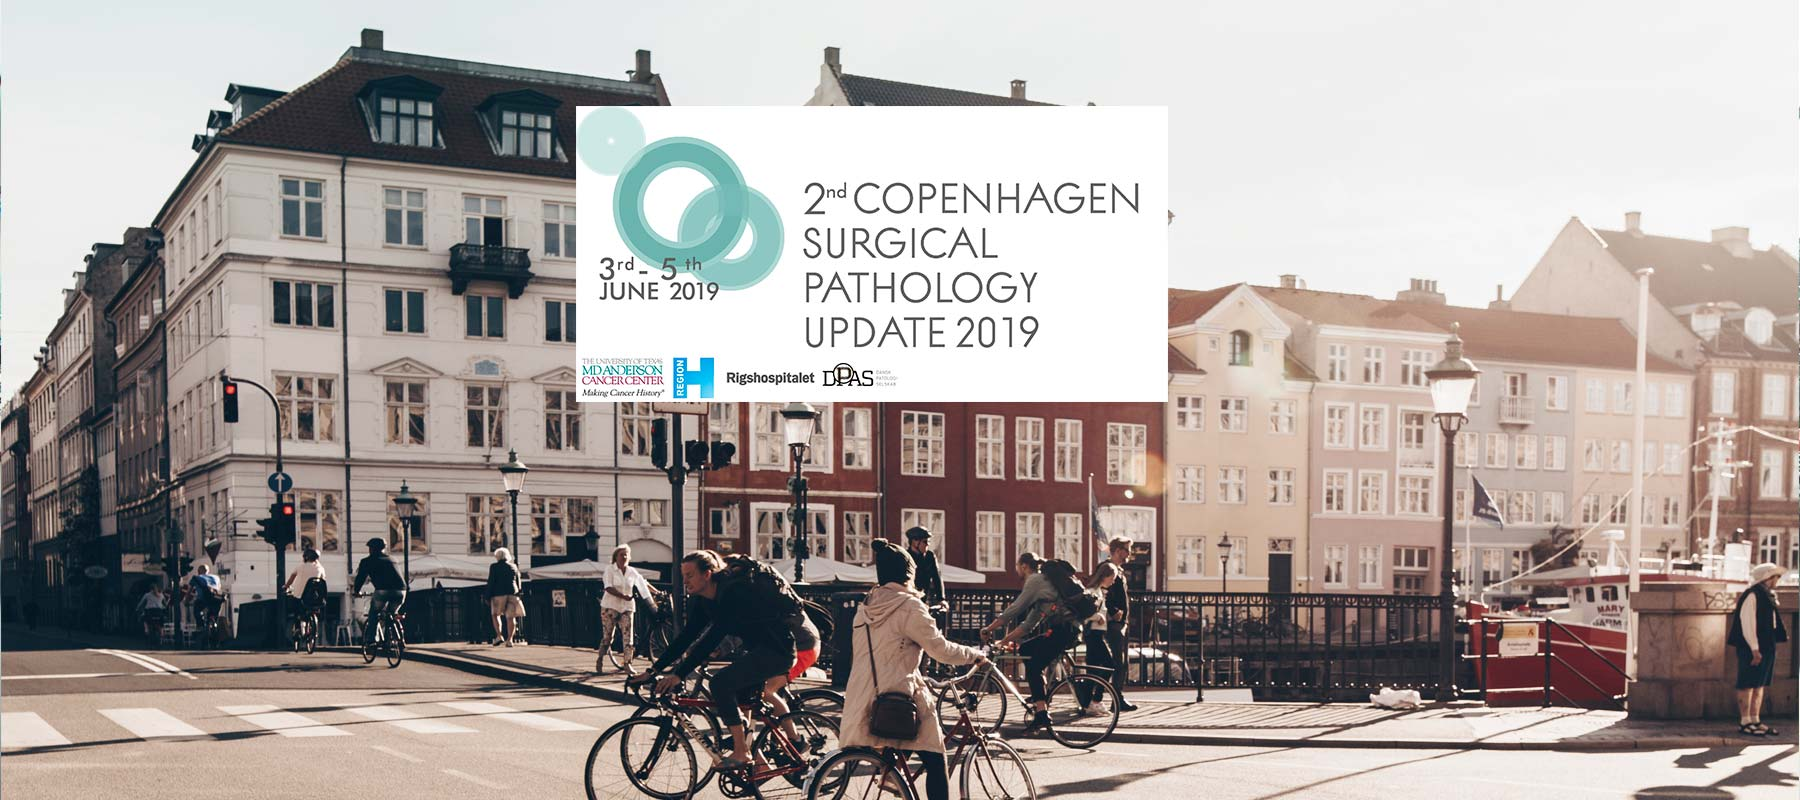 Copenhagen Surgical Pathology Update